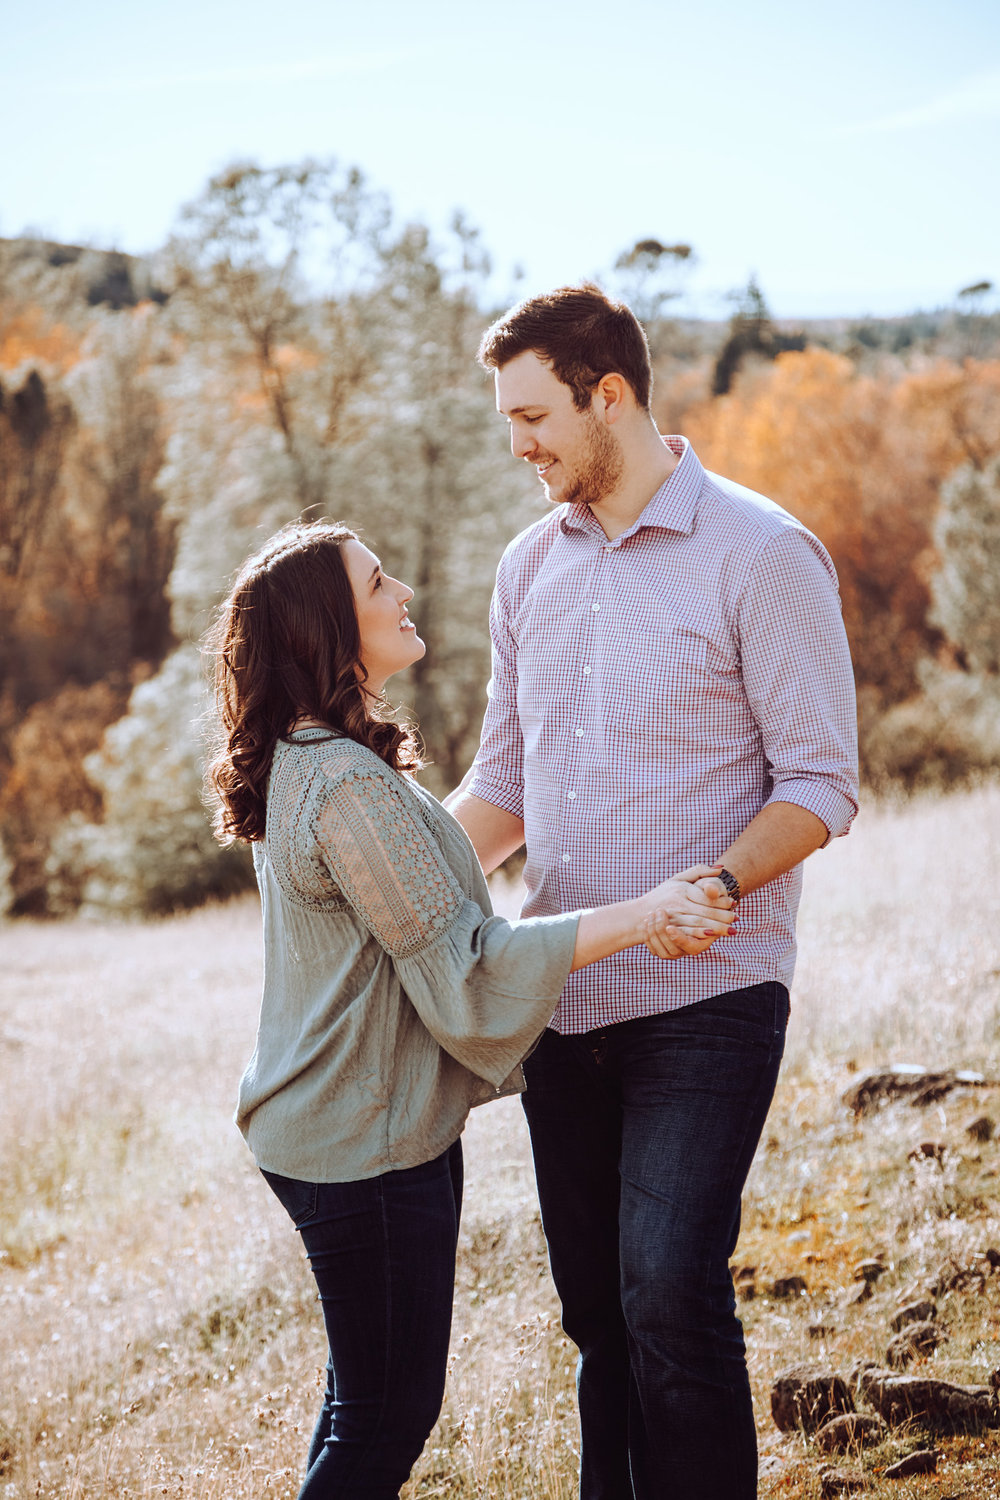 Engagement-photography-Upper-Park-Chico-CA-9.jpg